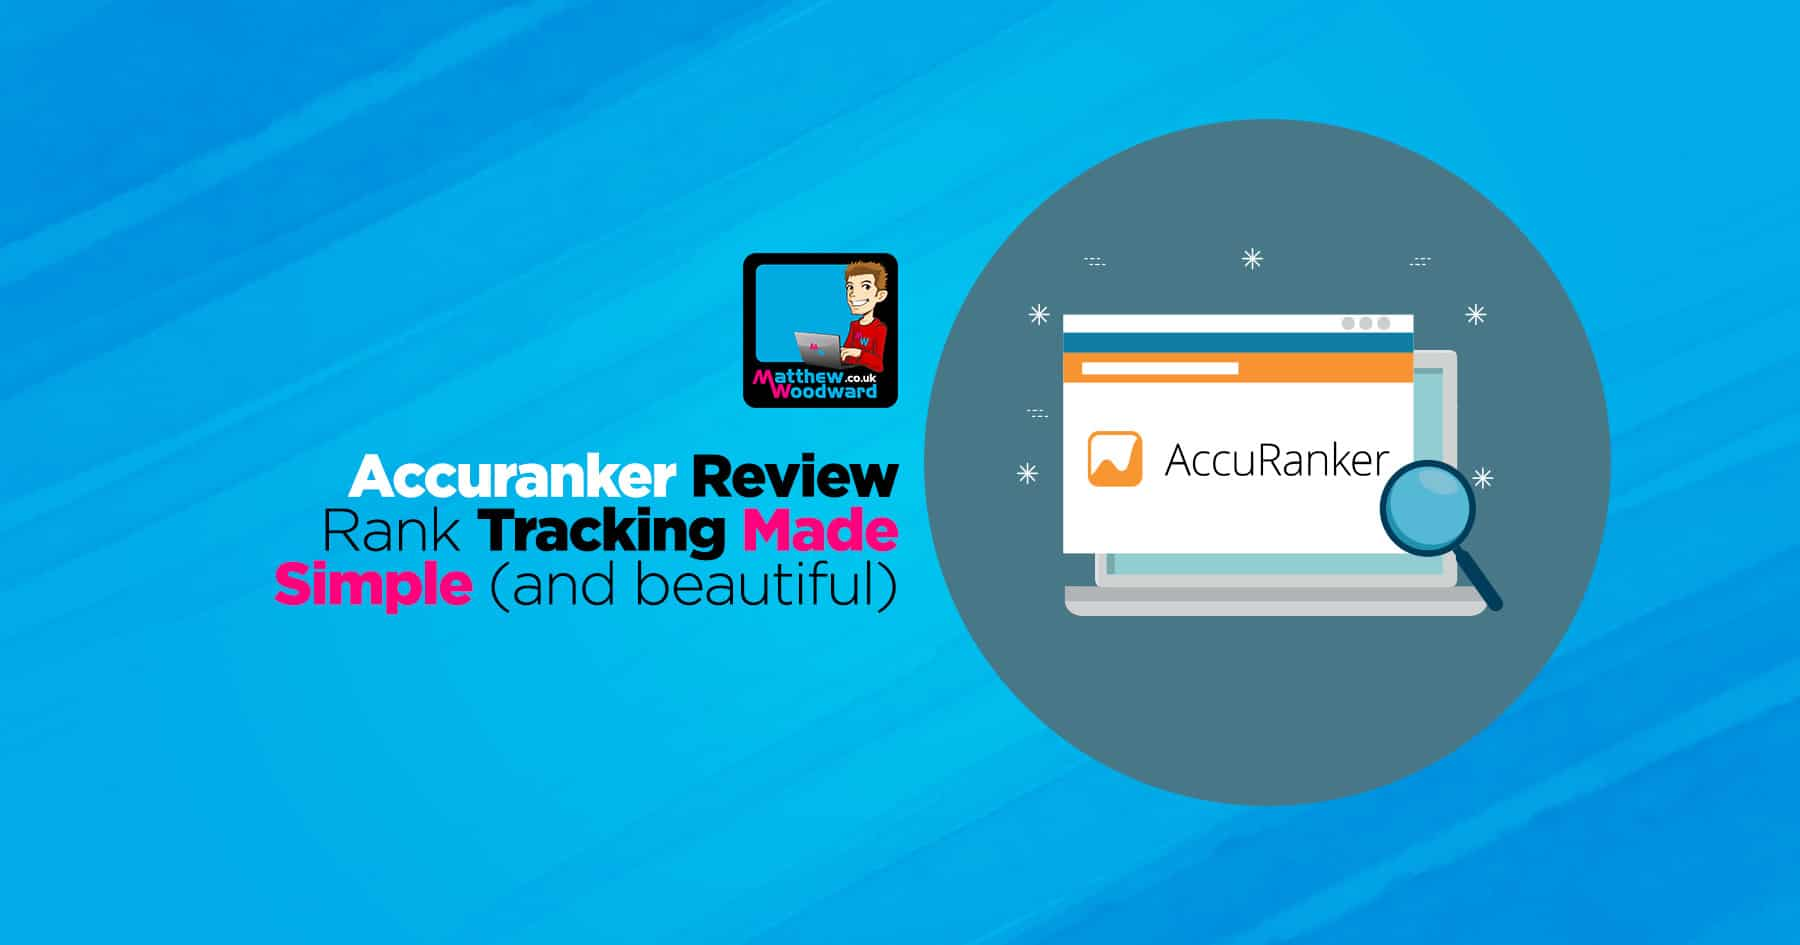 AccuRanker Review - What You Need To Know